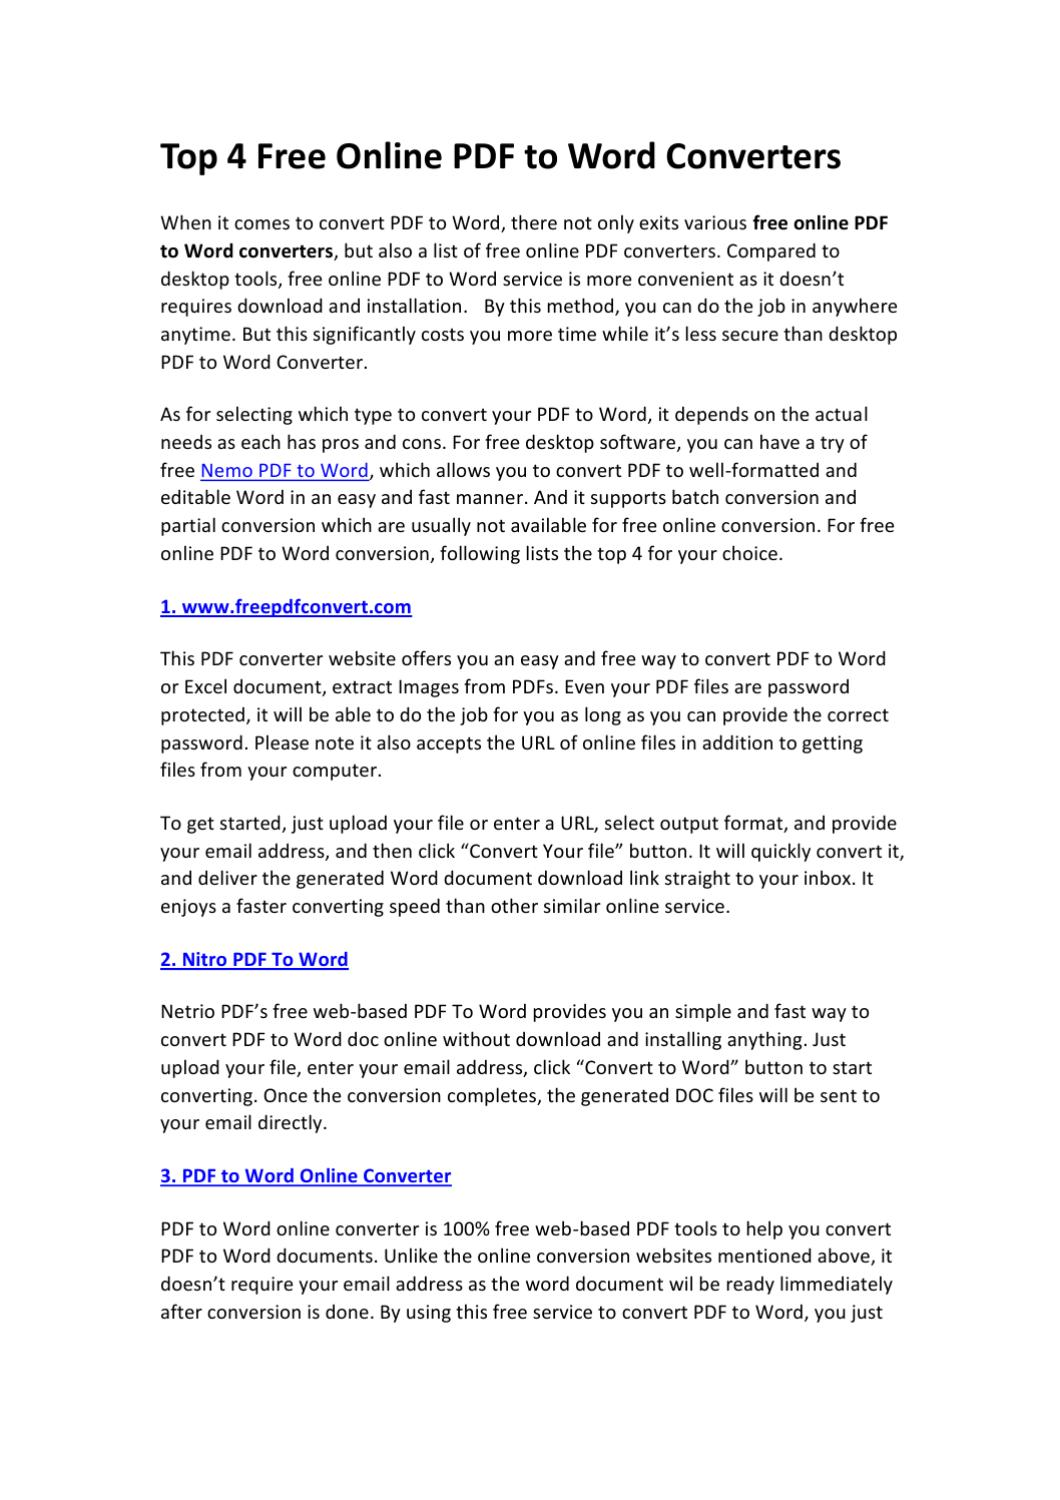 Top 4 Free Online PDF to Word Converters by sarina lee - issuu